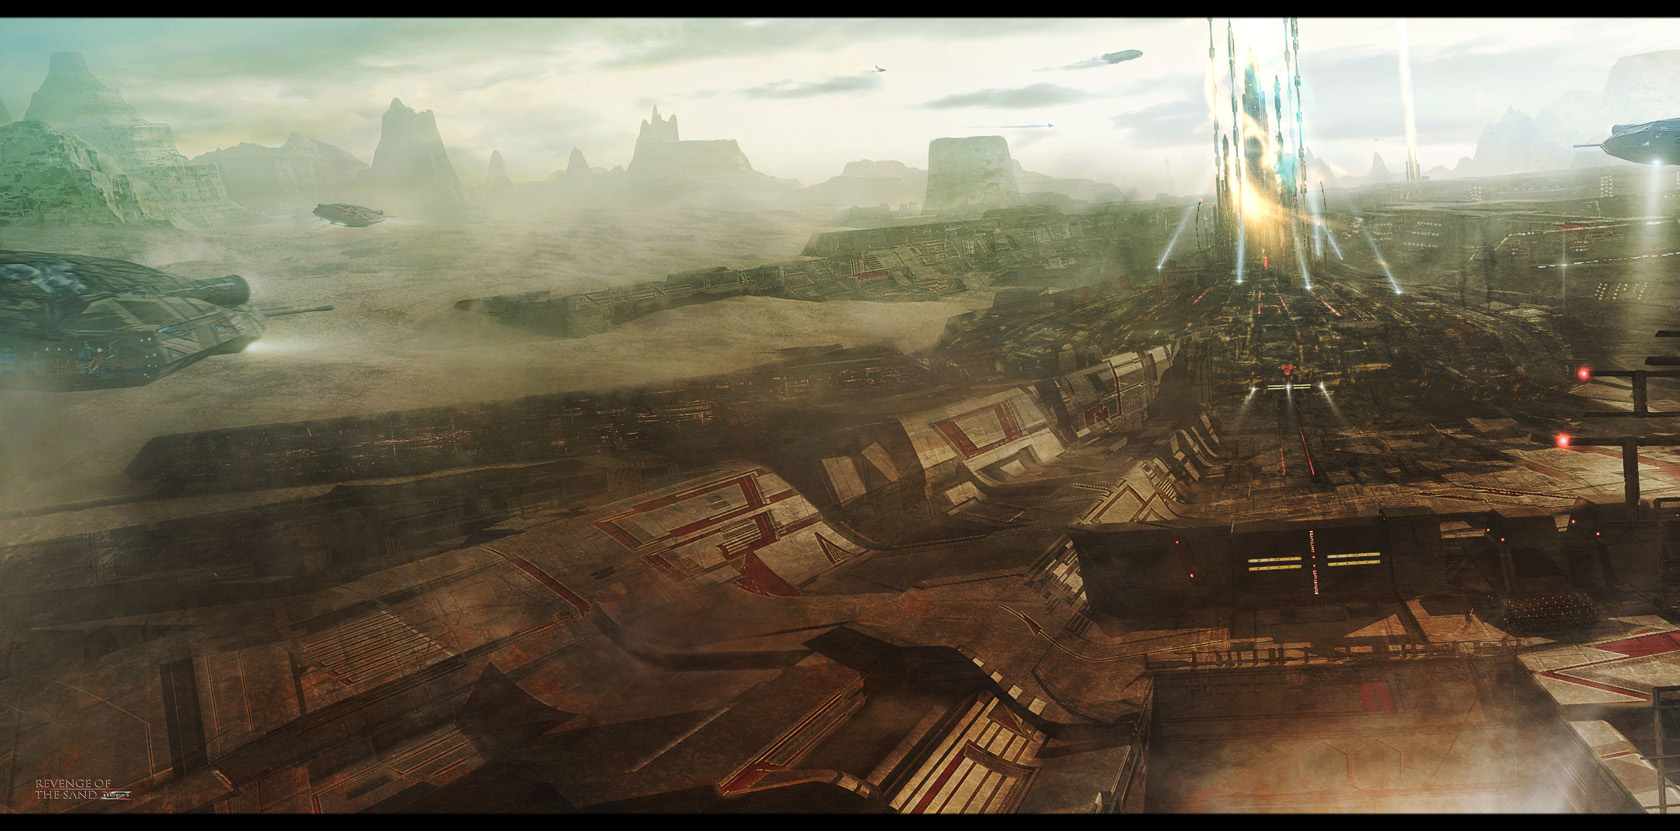 Space fantasy awesome wallpapers page 2 for Space matte painting